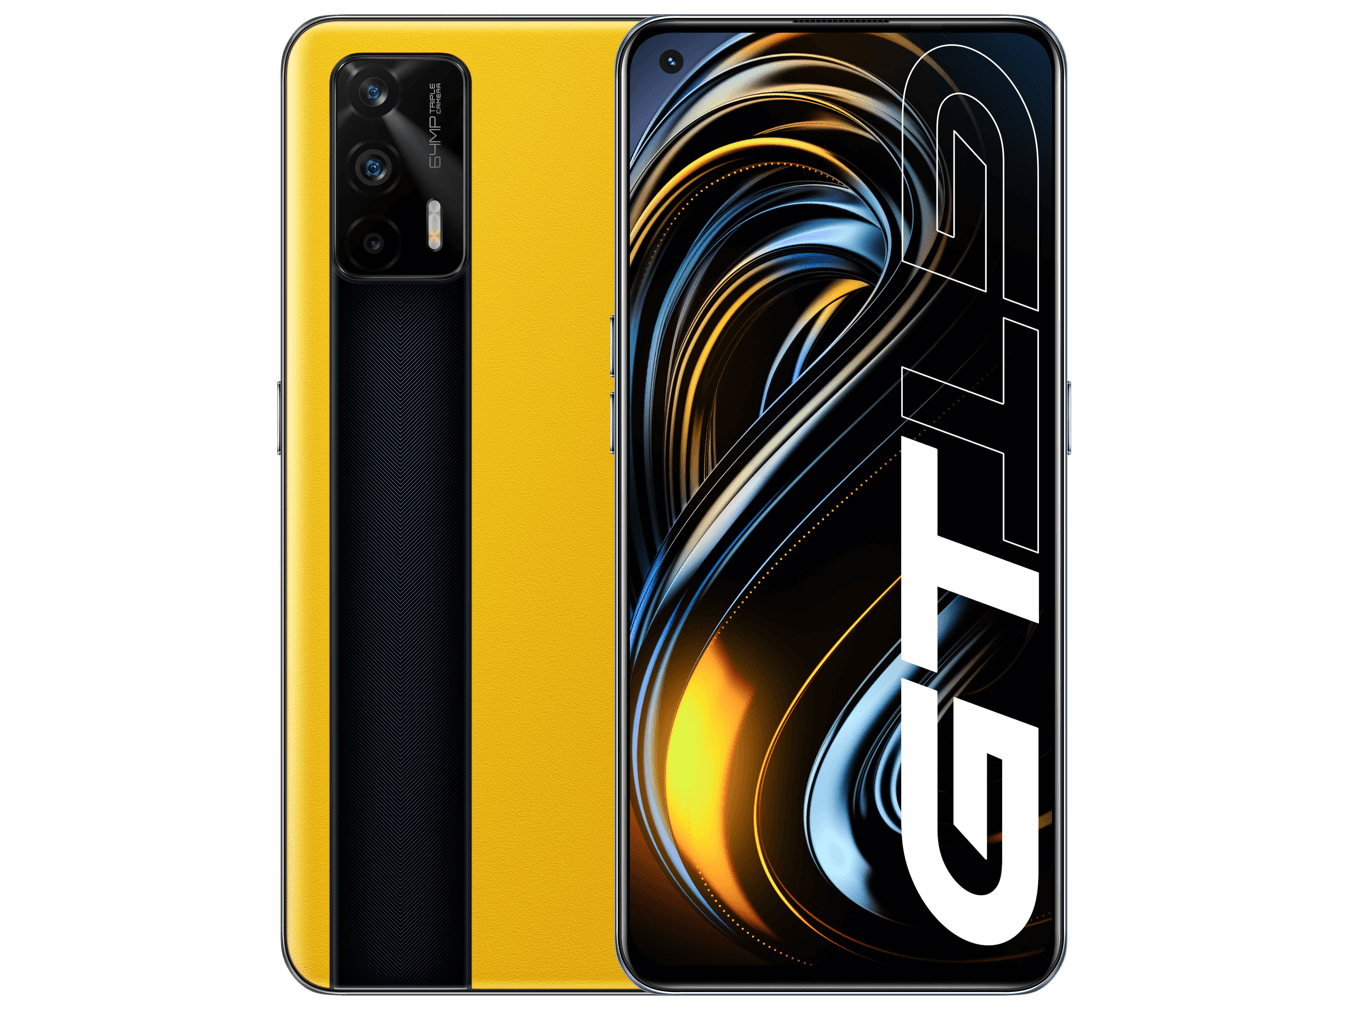 The Realme GT 5G is the world's cheapest Snapdragon 888 phone